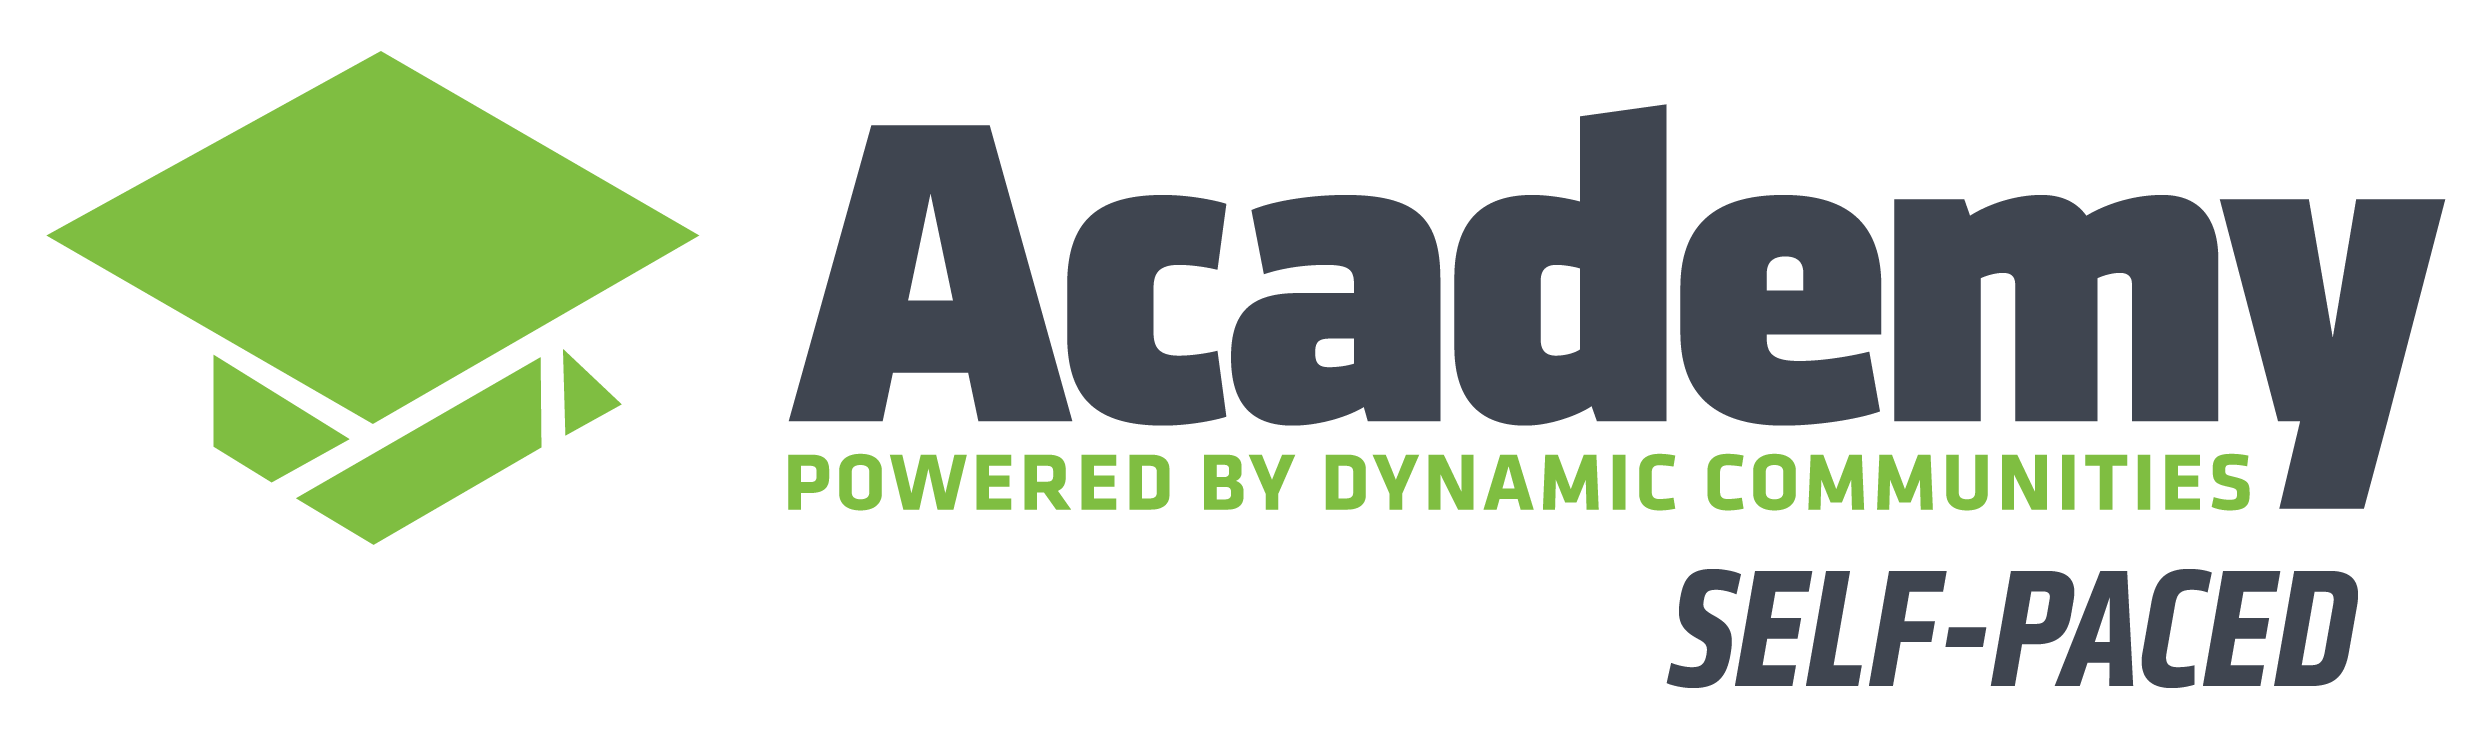 Academy Powered By Dynamic Communities Logo